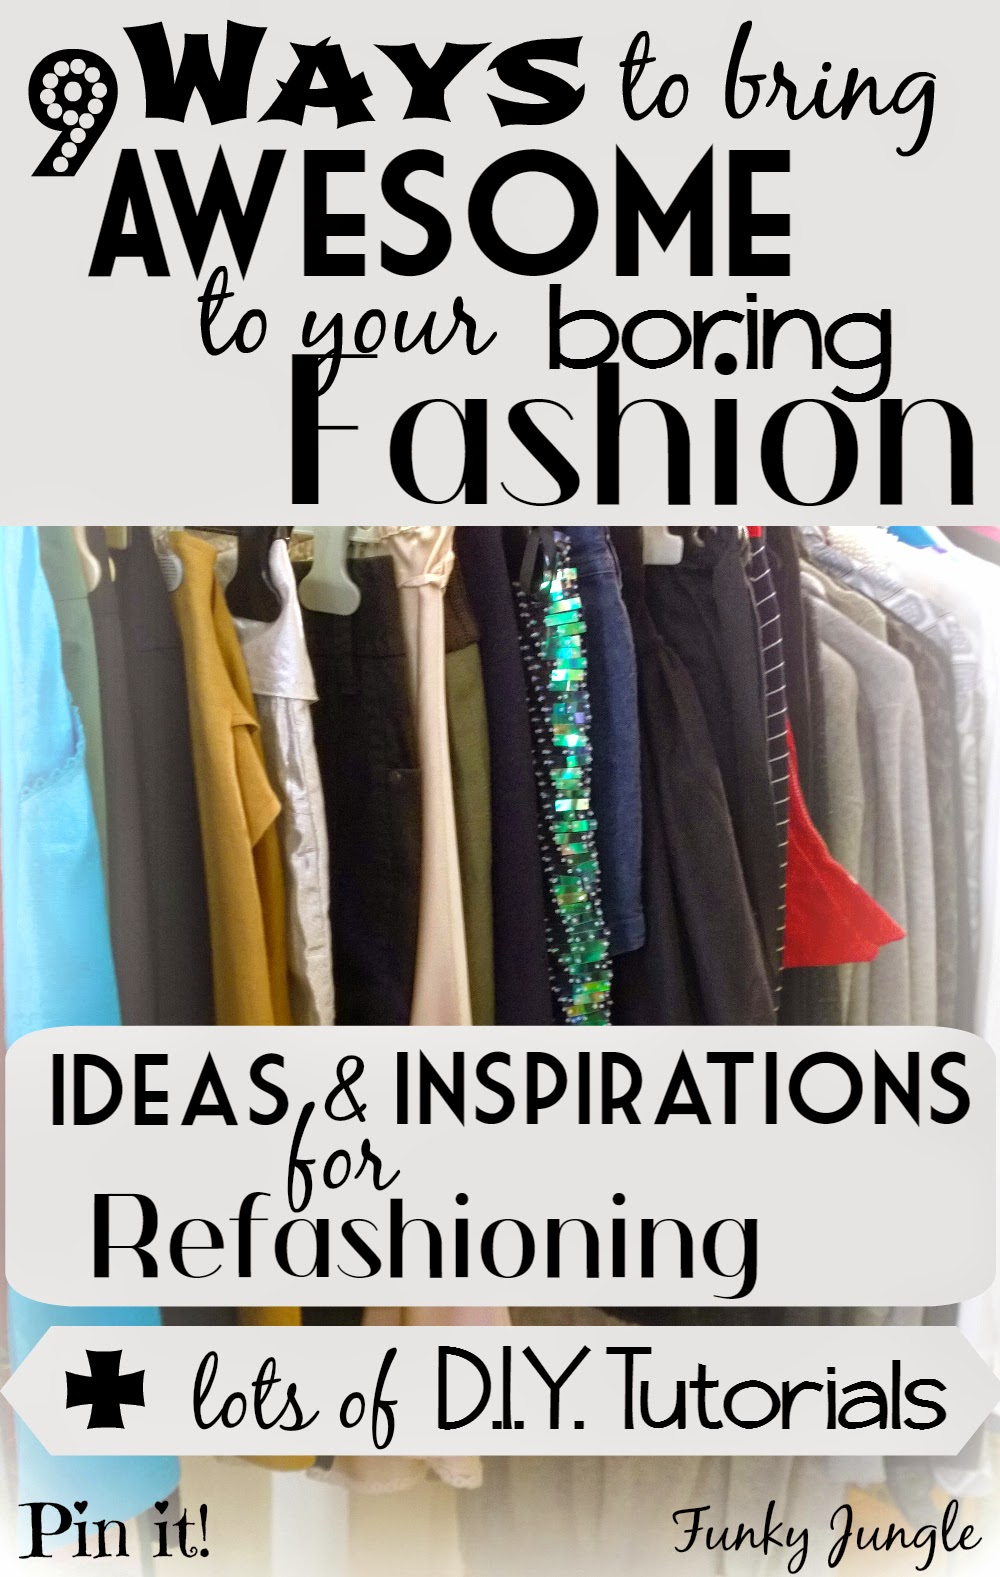 Ideas on how to spruce up & refashion old, plain or boring clothing plus links to lots of tutorials || 9 Ways to Make Your Boring Fashion Awesome | Funky Jungle, fashion and personal style blog